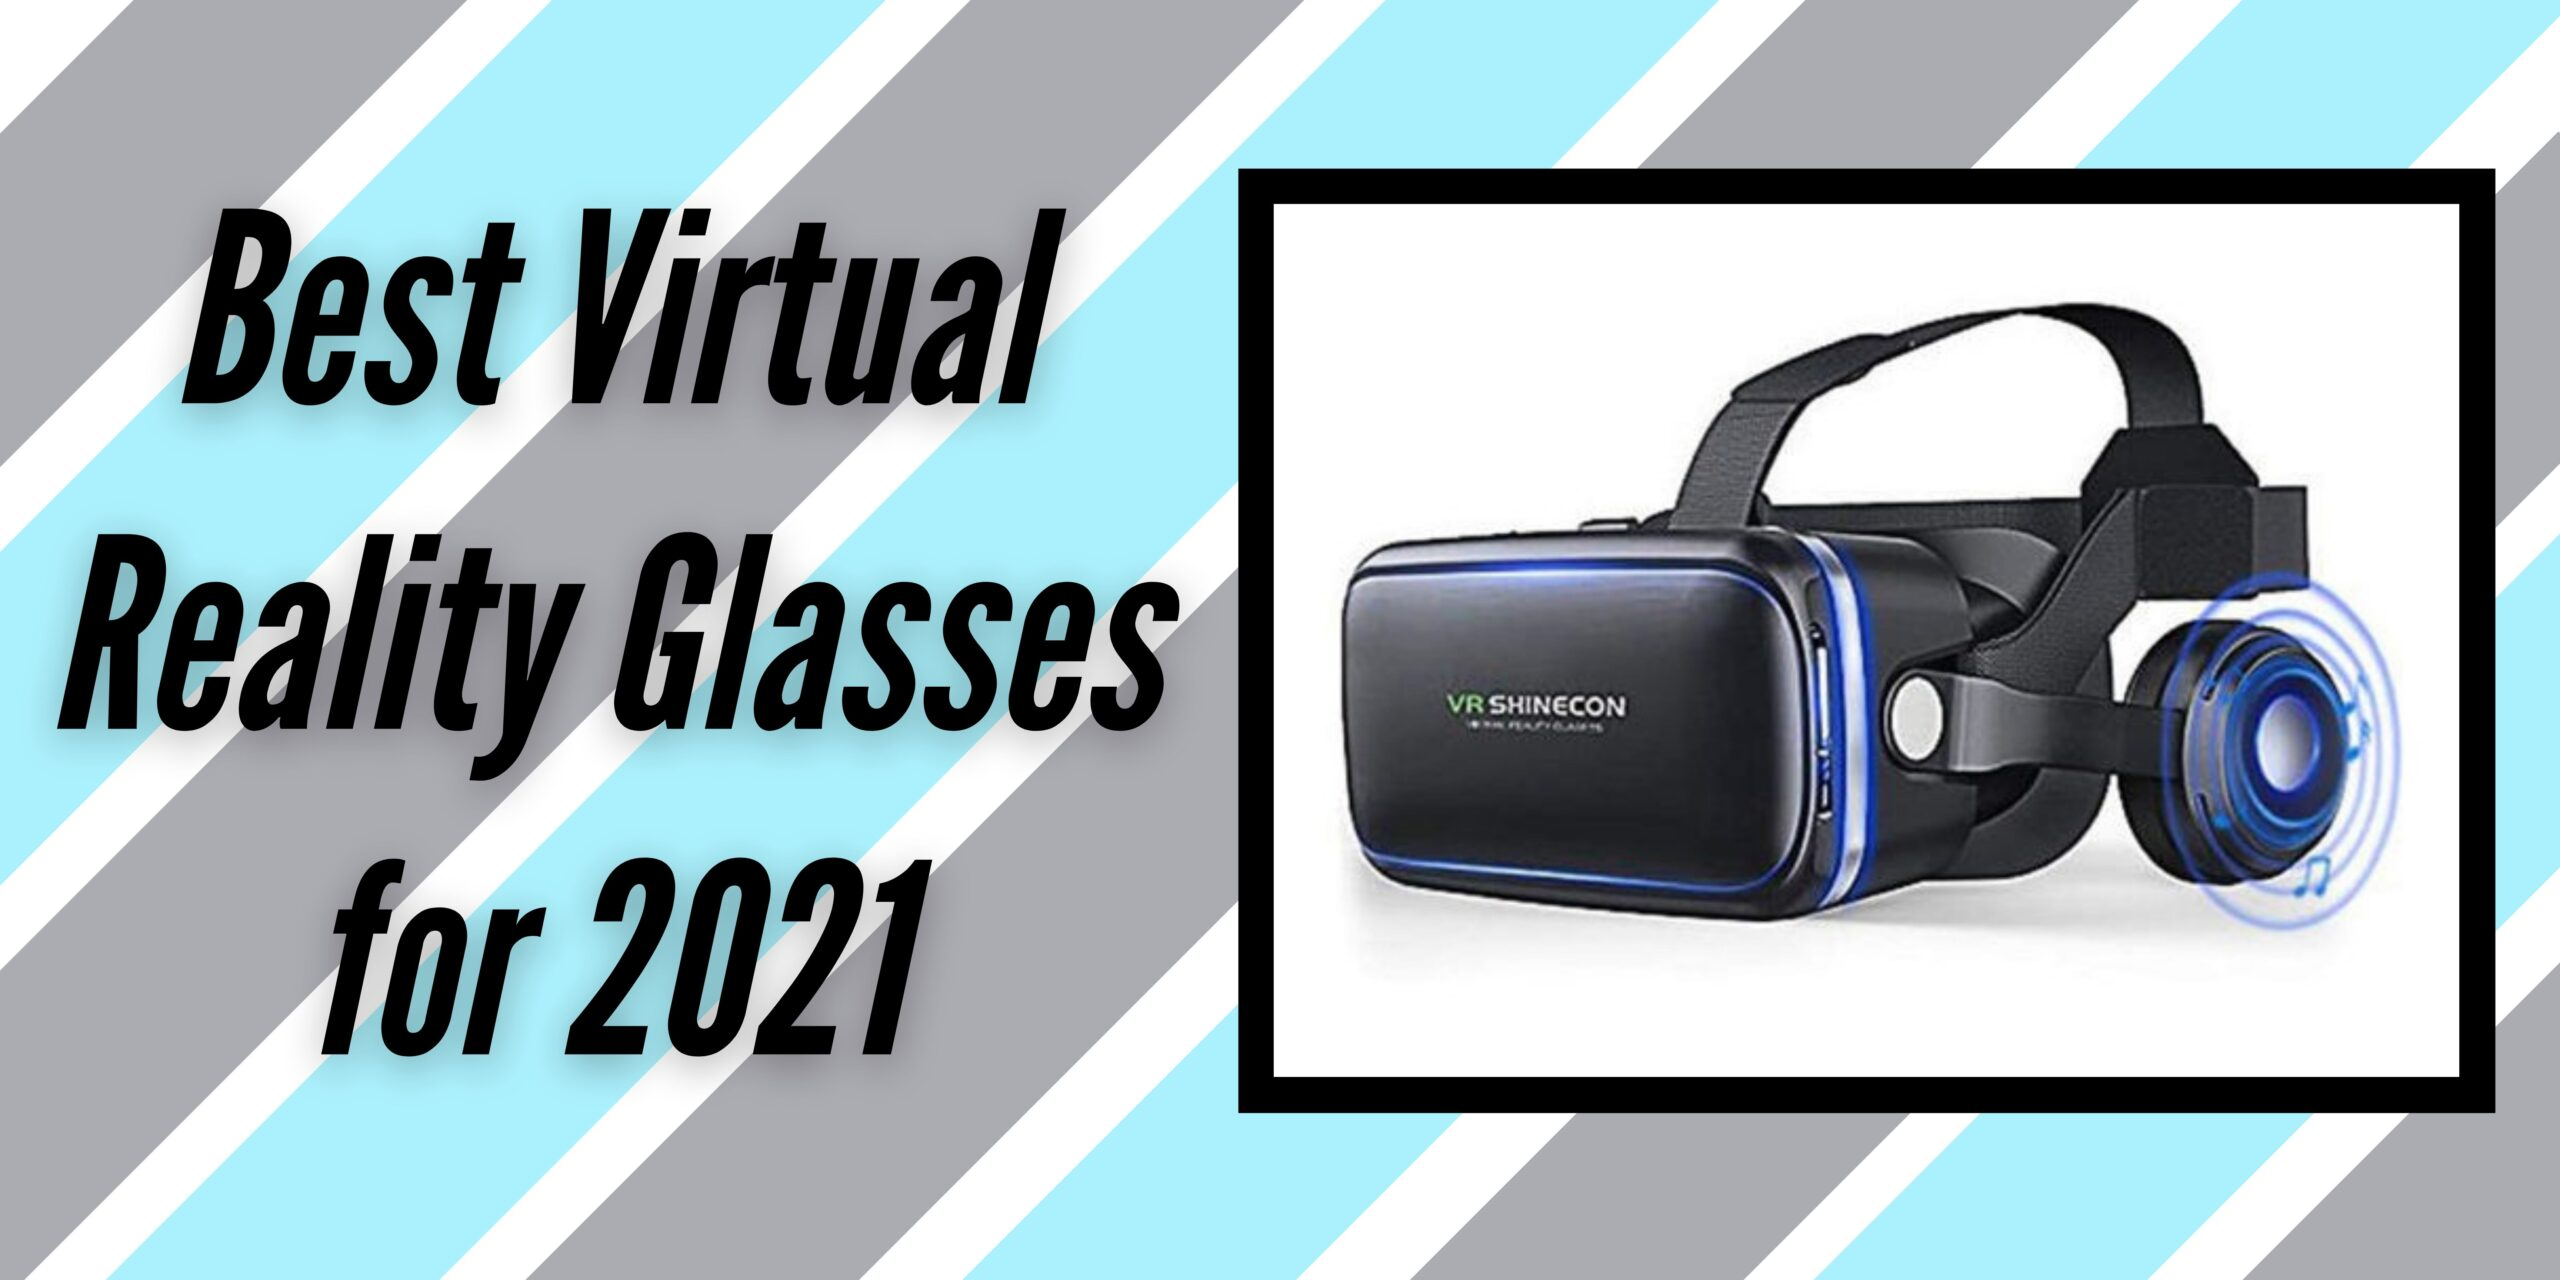 Best Virtual Reality Glasses for 2021